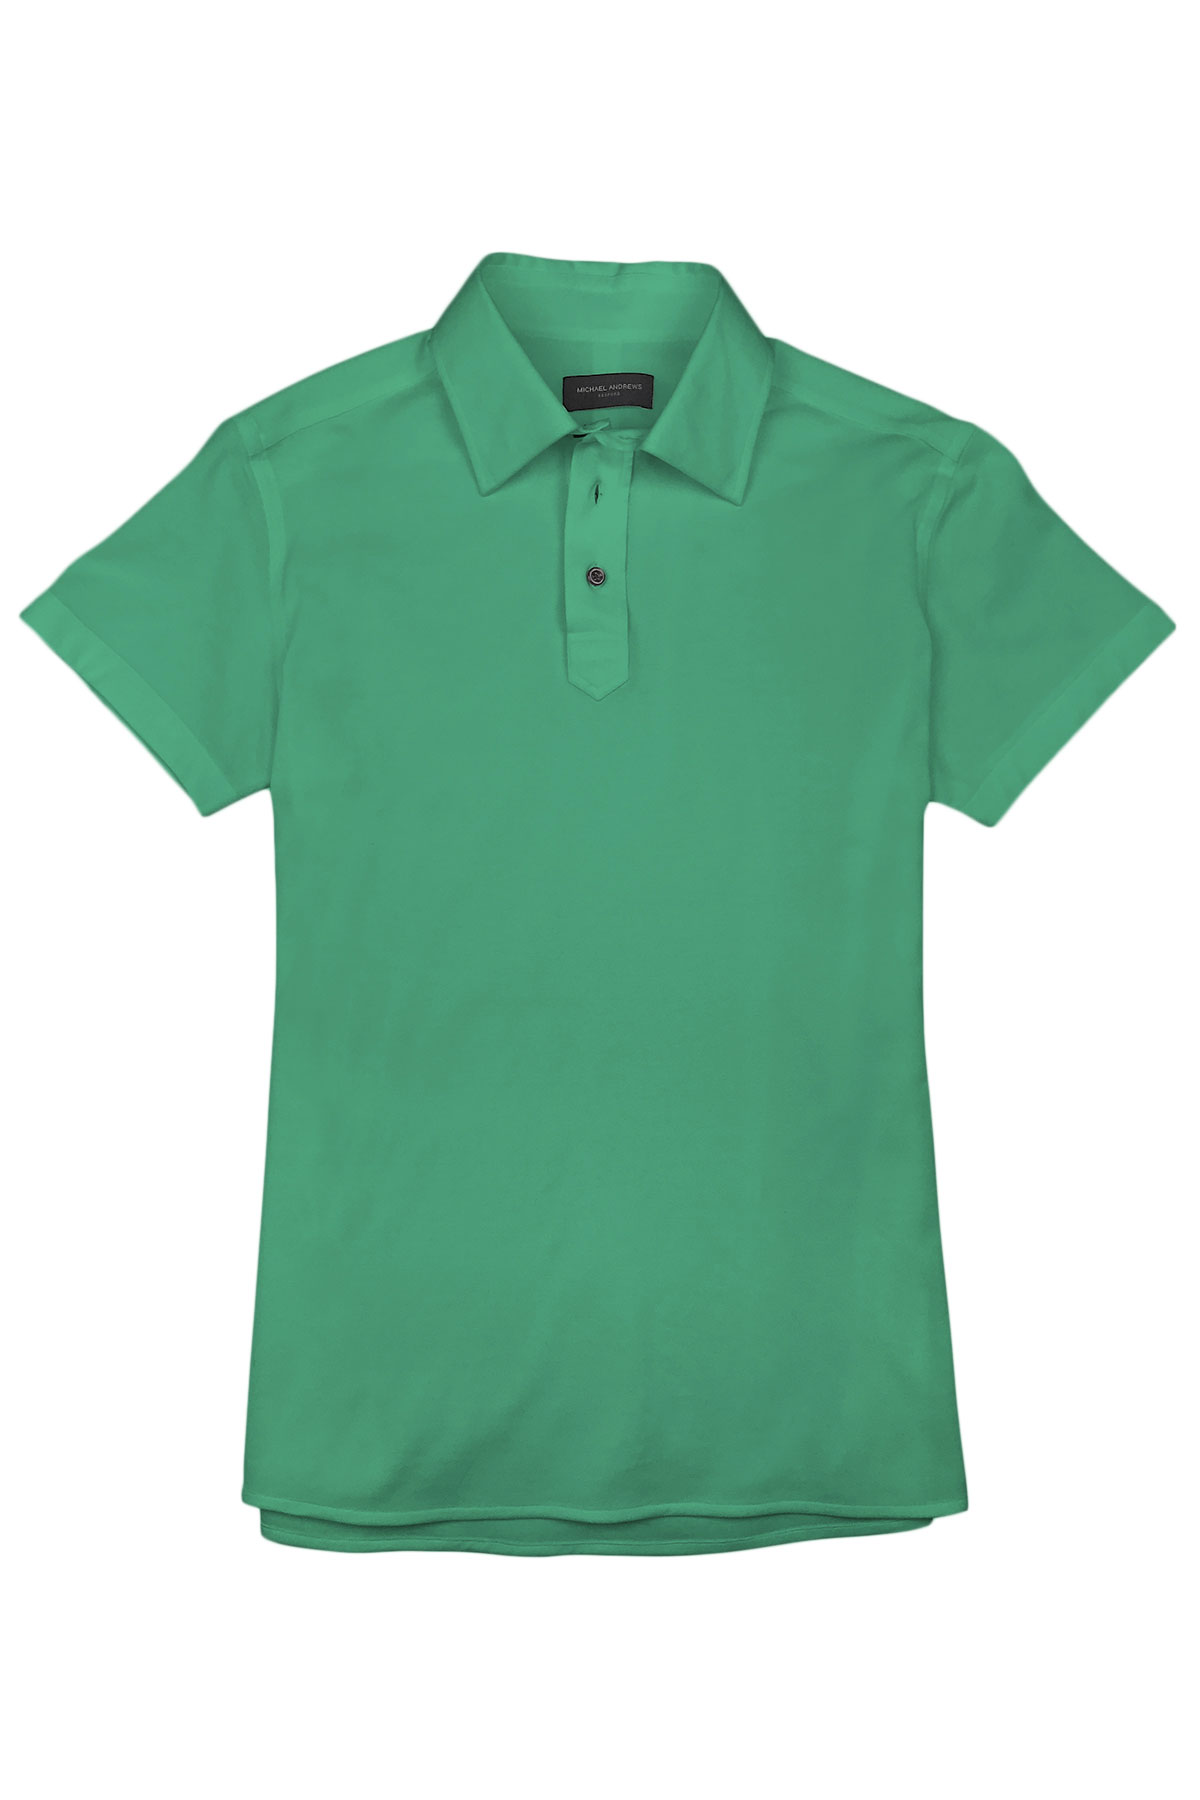 Mint Green Pique Polo Shirt